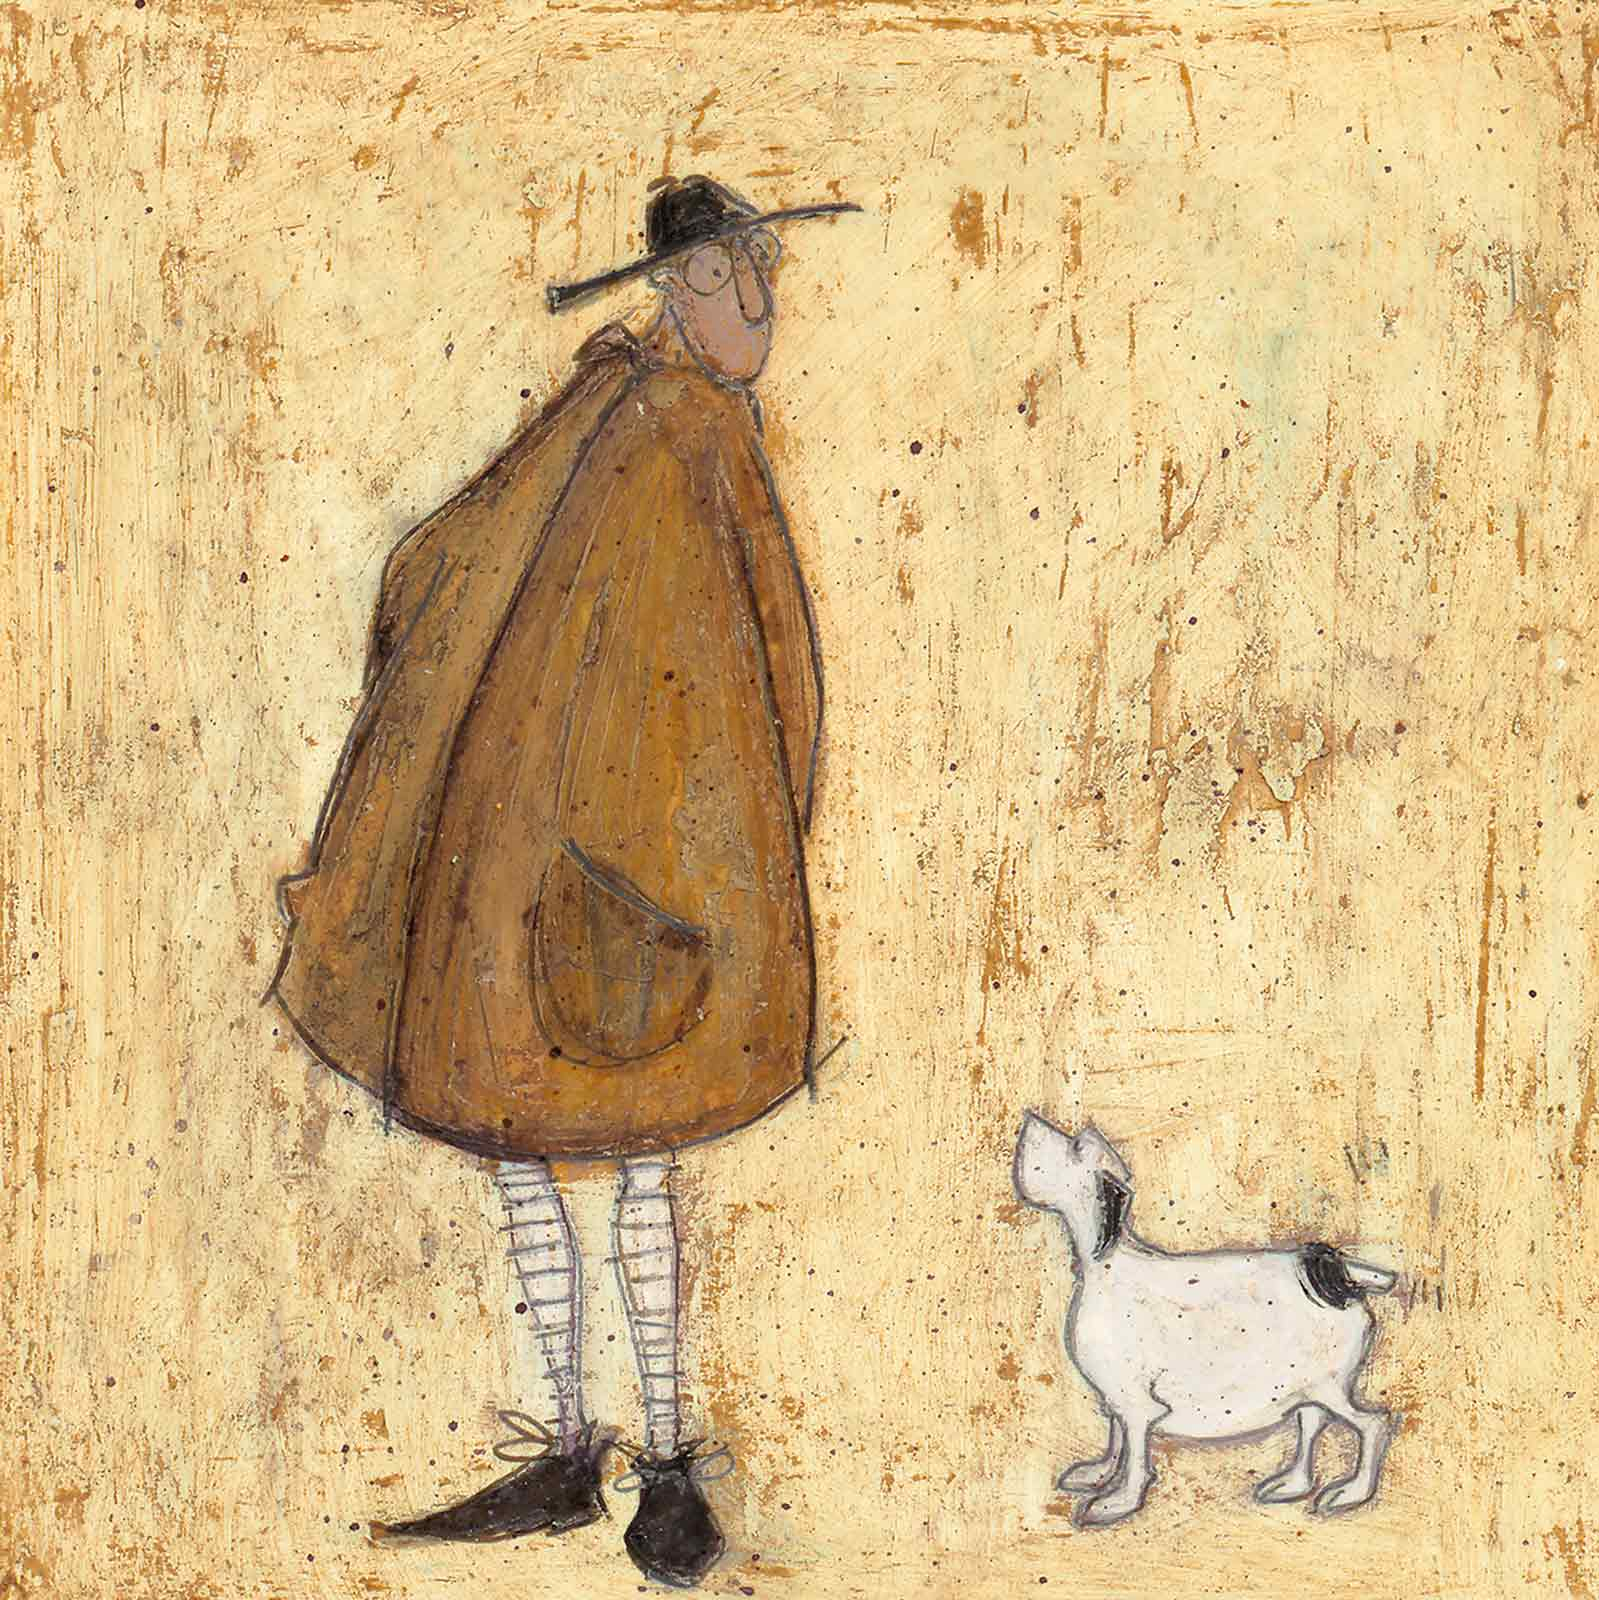 The Wanderer Returns, Sam Toft